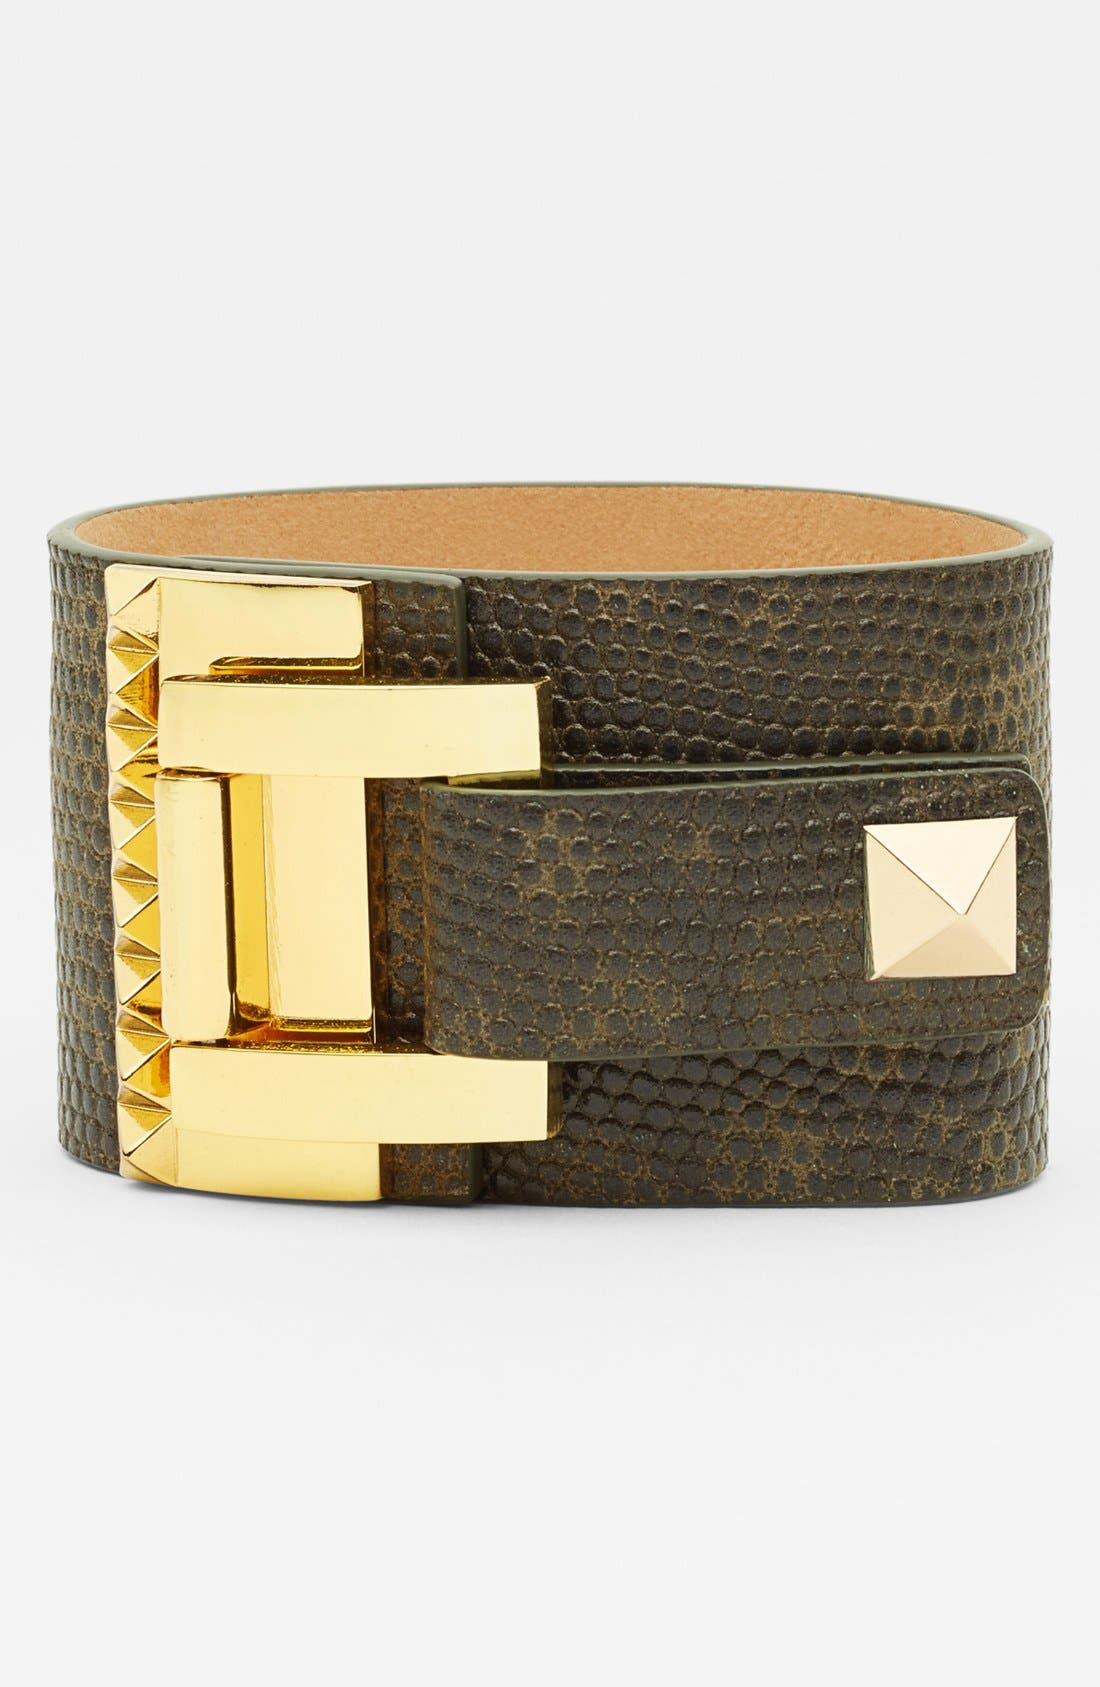 Alternate Image 1 Selected - Vince Camuto 'Tour of Duty' Studded Buckle Wrap Bracelet